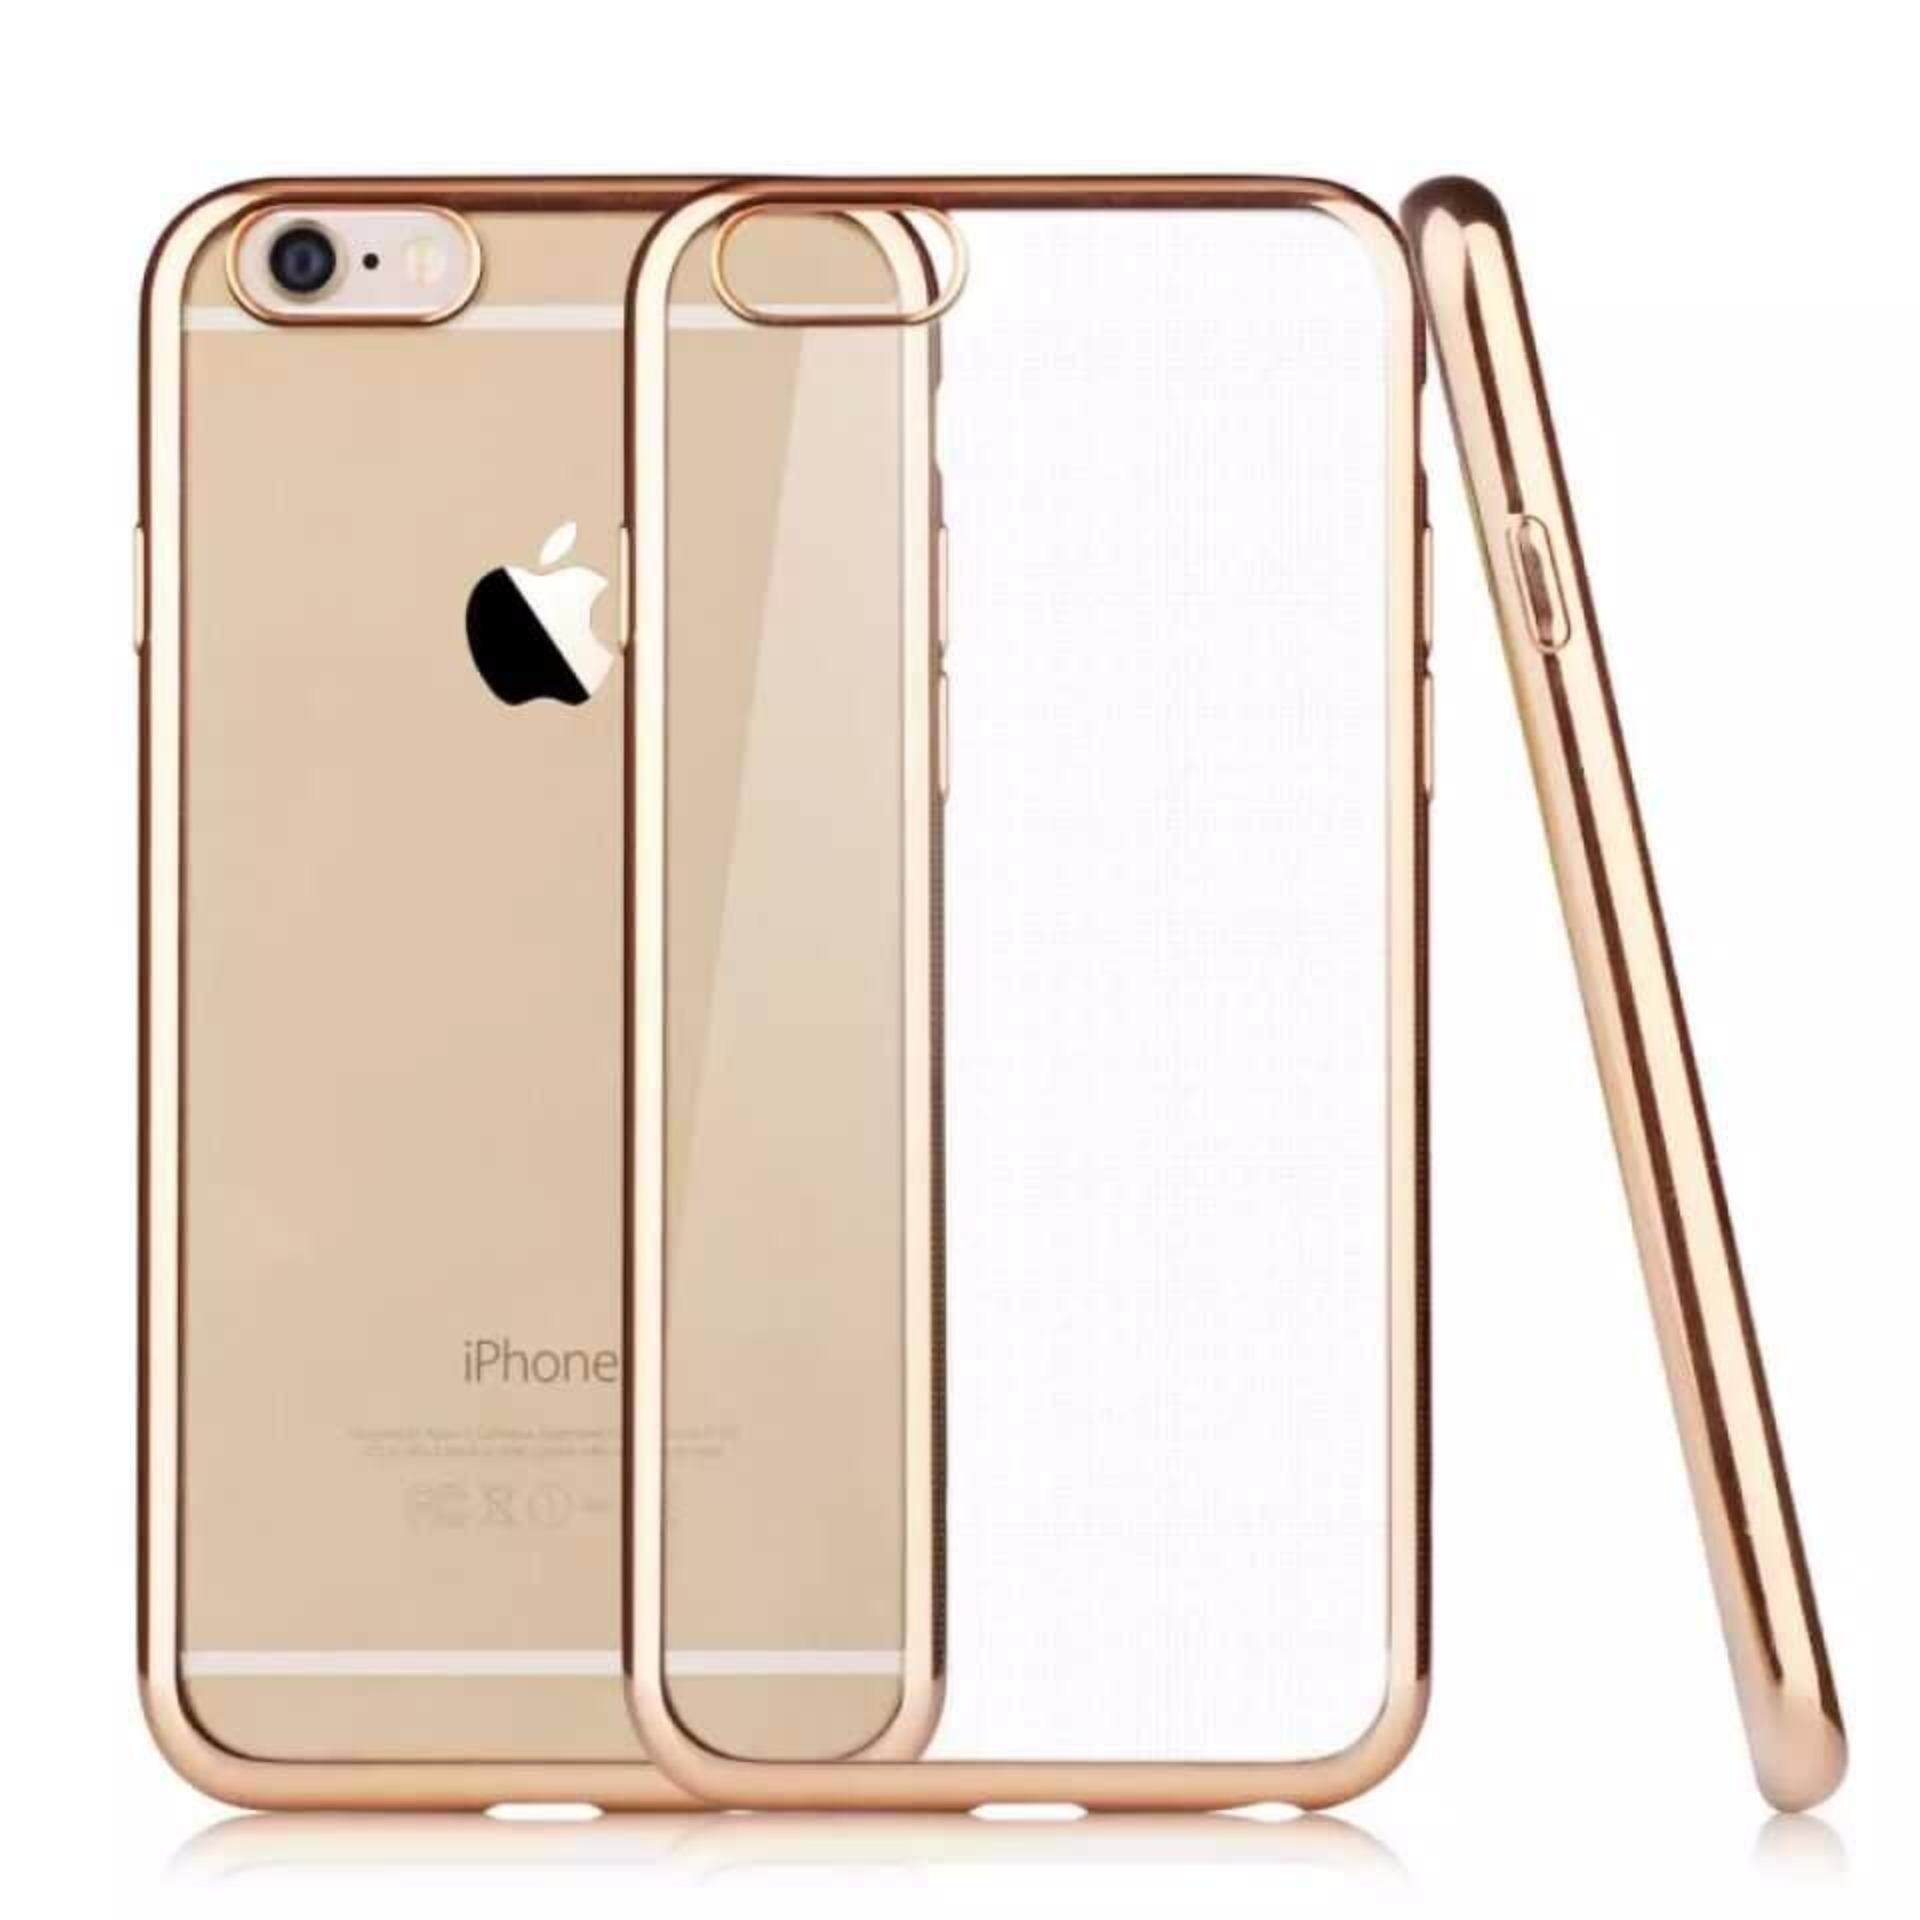 ViLi Apple iPhone 6 Plus 6s Plus TPU Silicone Ultrathin Luxury Slim Electroplating Crystal Clear Transparent Soft Back Cover Case Covers (Luxury Gold) FREE 2 Screen Protector